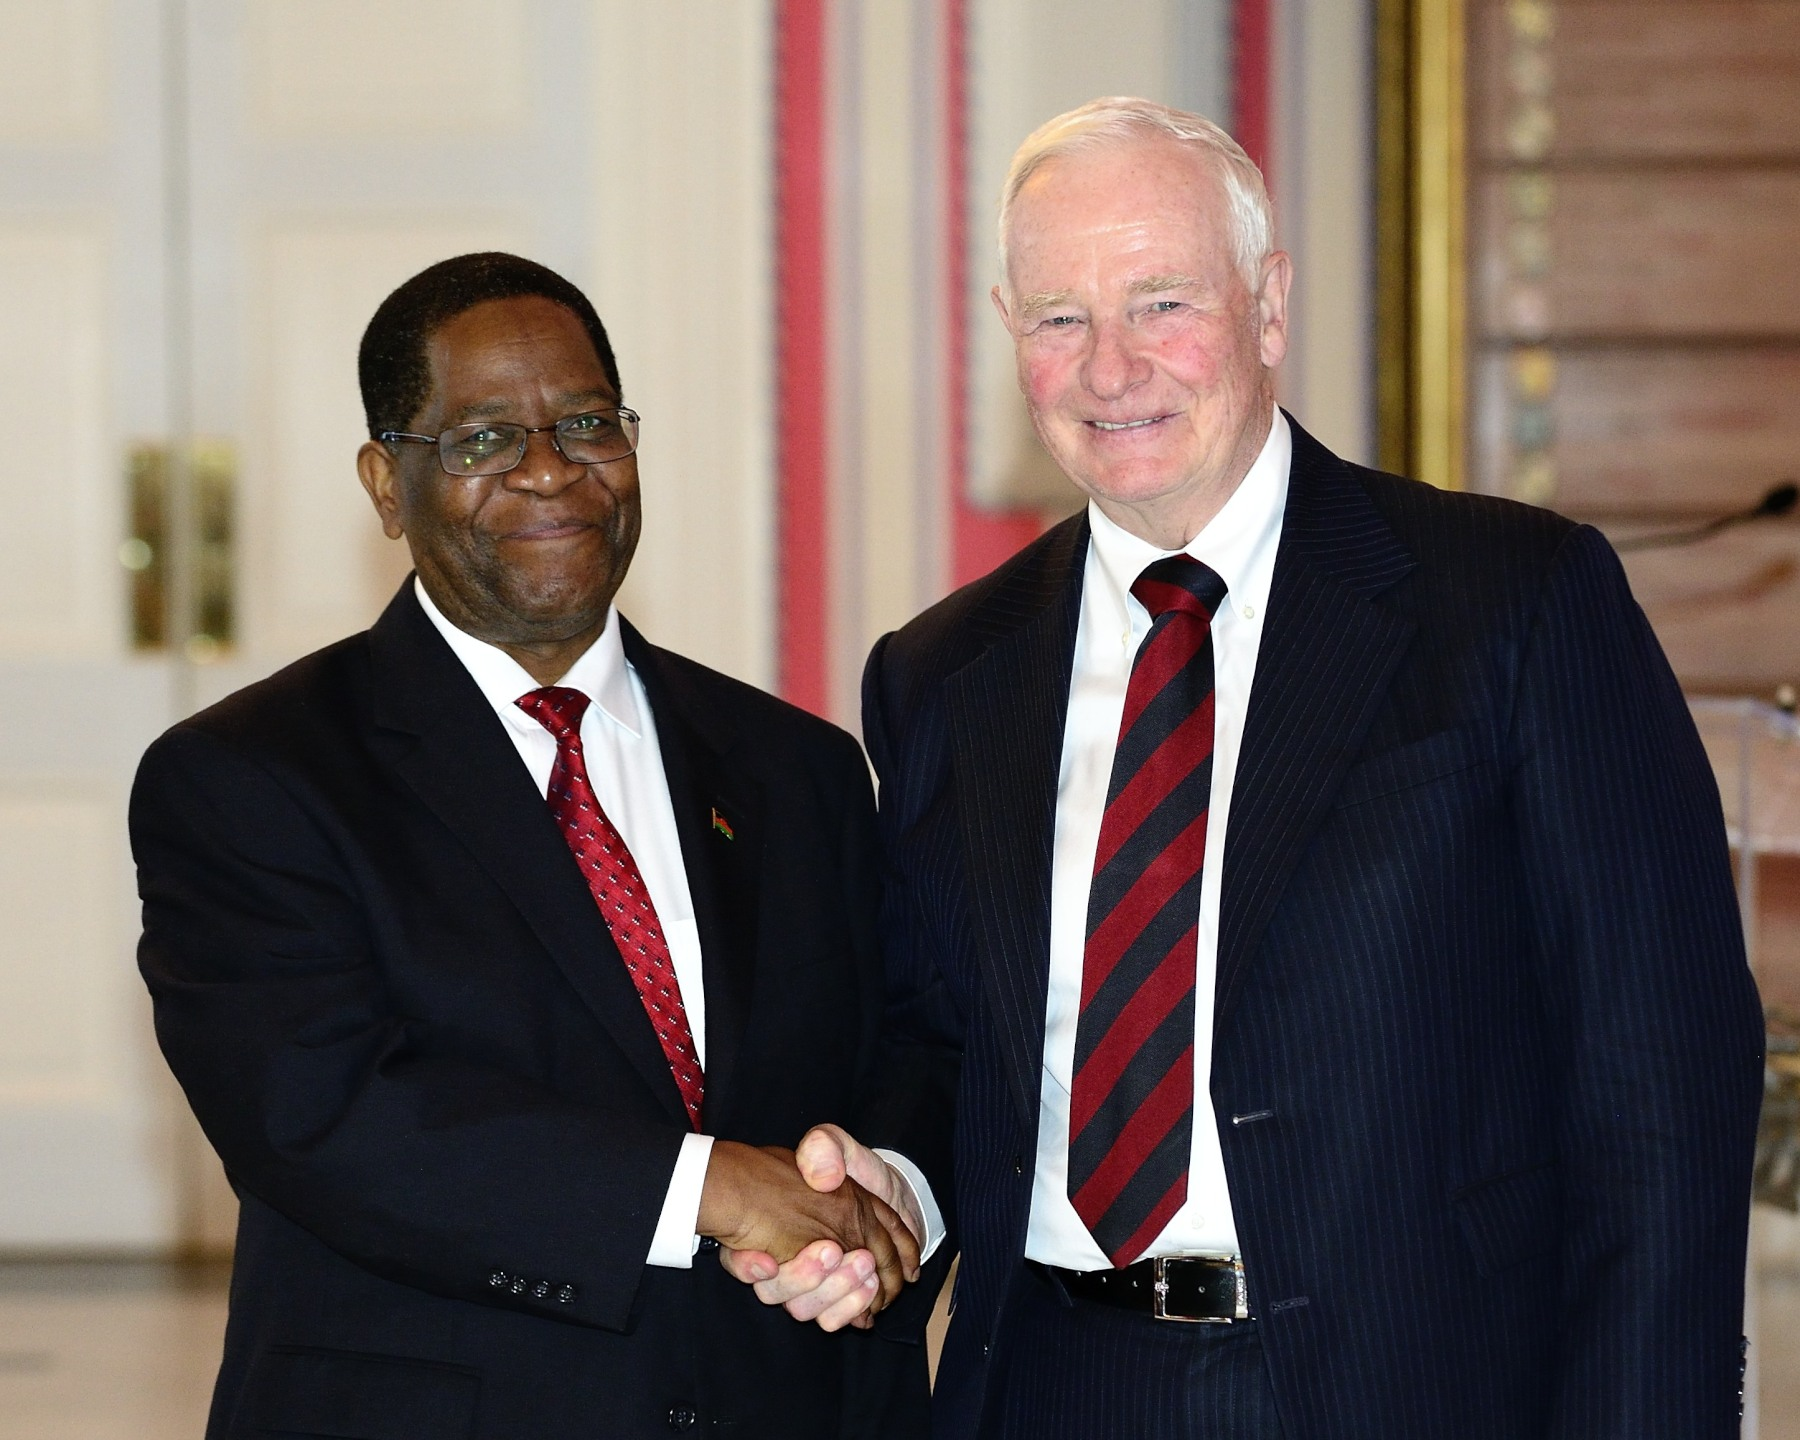 His Excellency Necton Darlington Mhura, High Commissioner for the Republic of Malawi, was the last one to present his letters of credence to the Governor General.